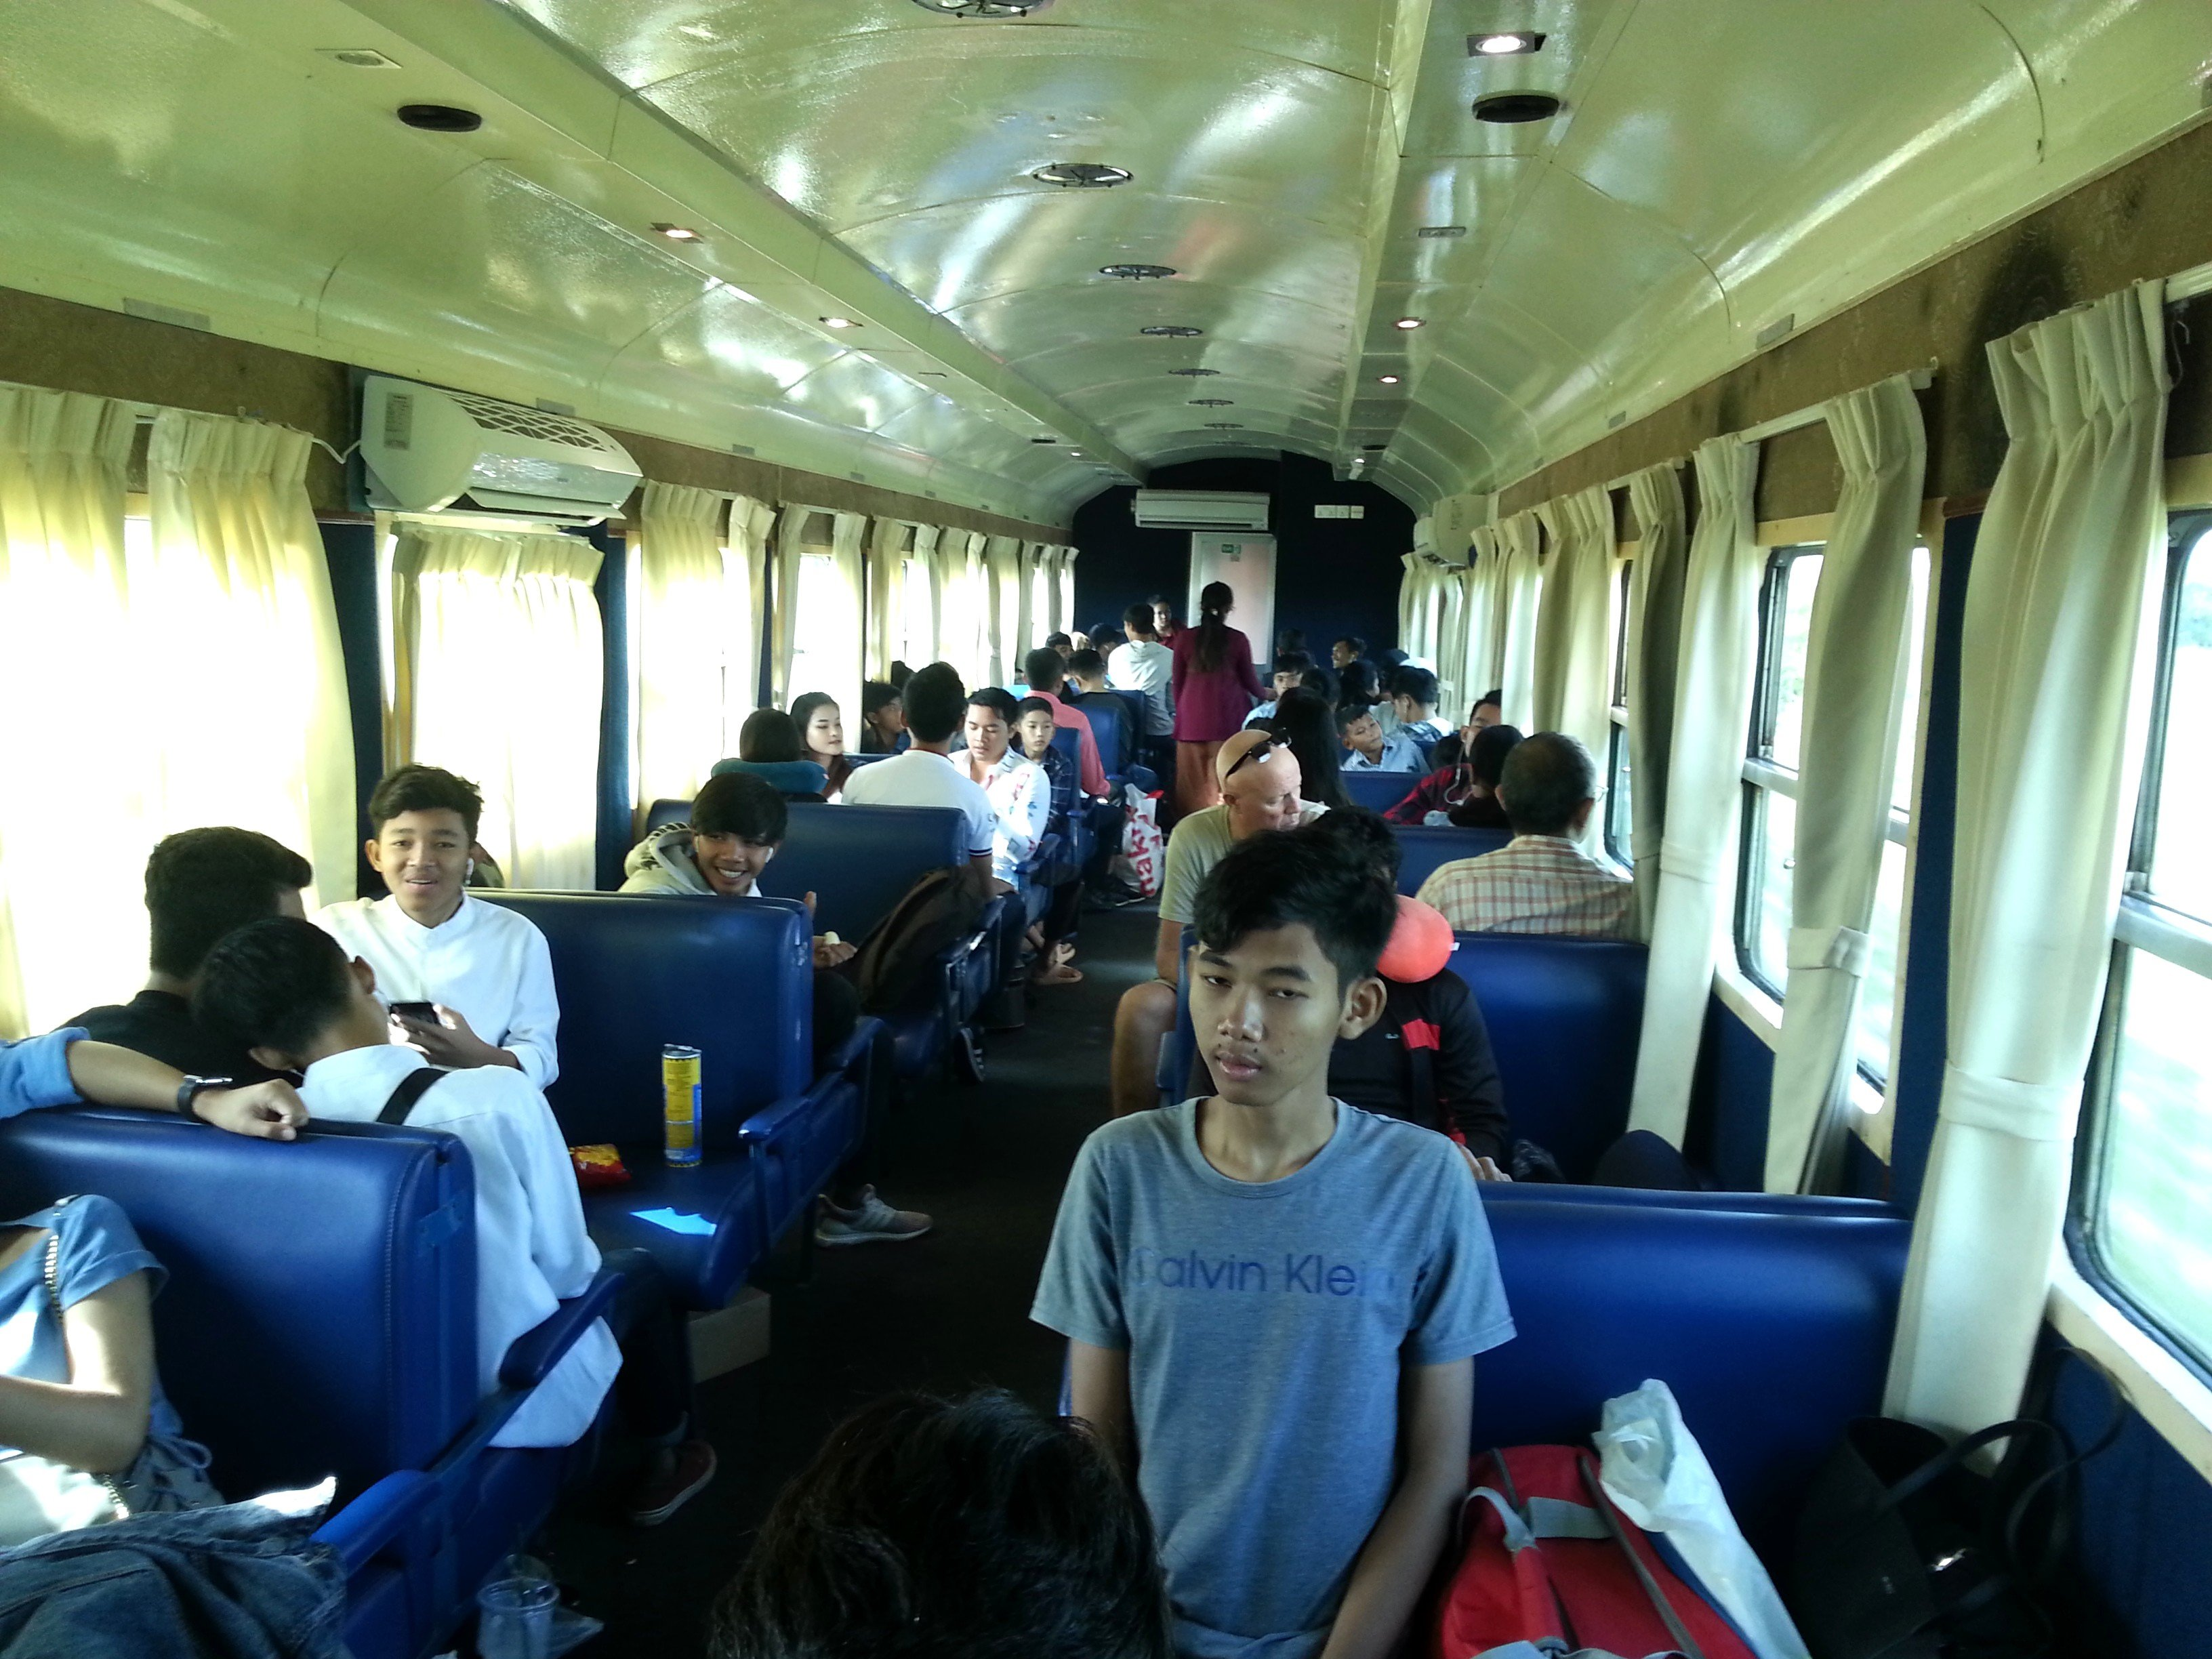 Standard carriage on a Cambodia train